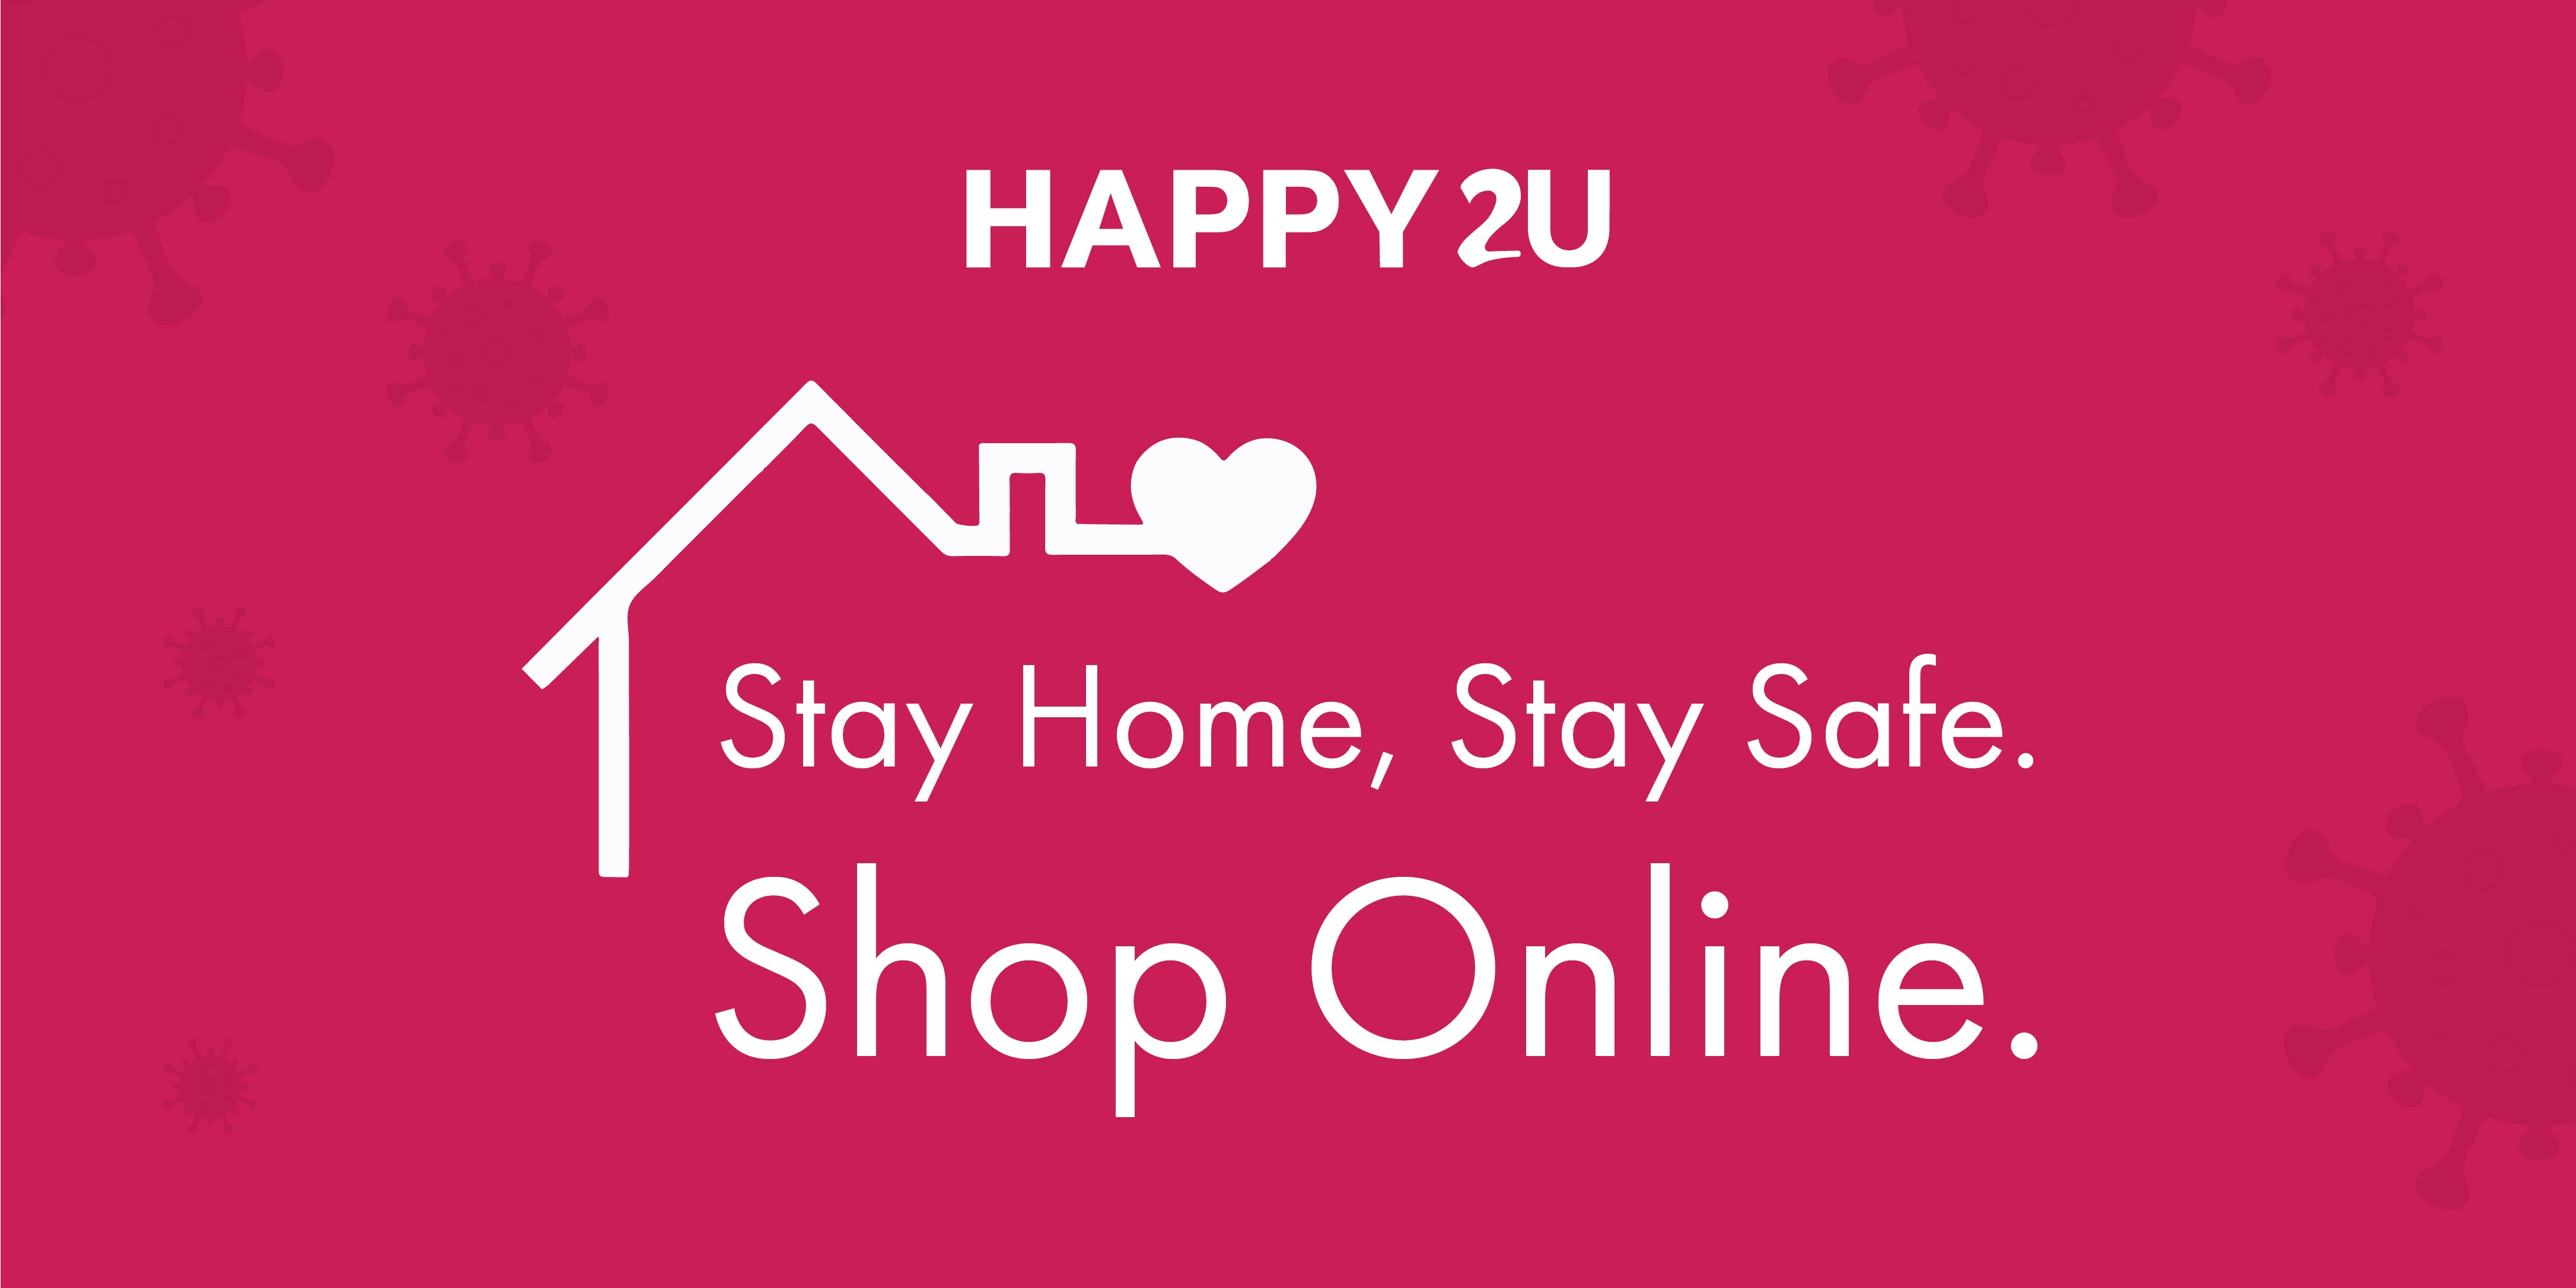 Stay Home, Stay Safe. Shop Online.